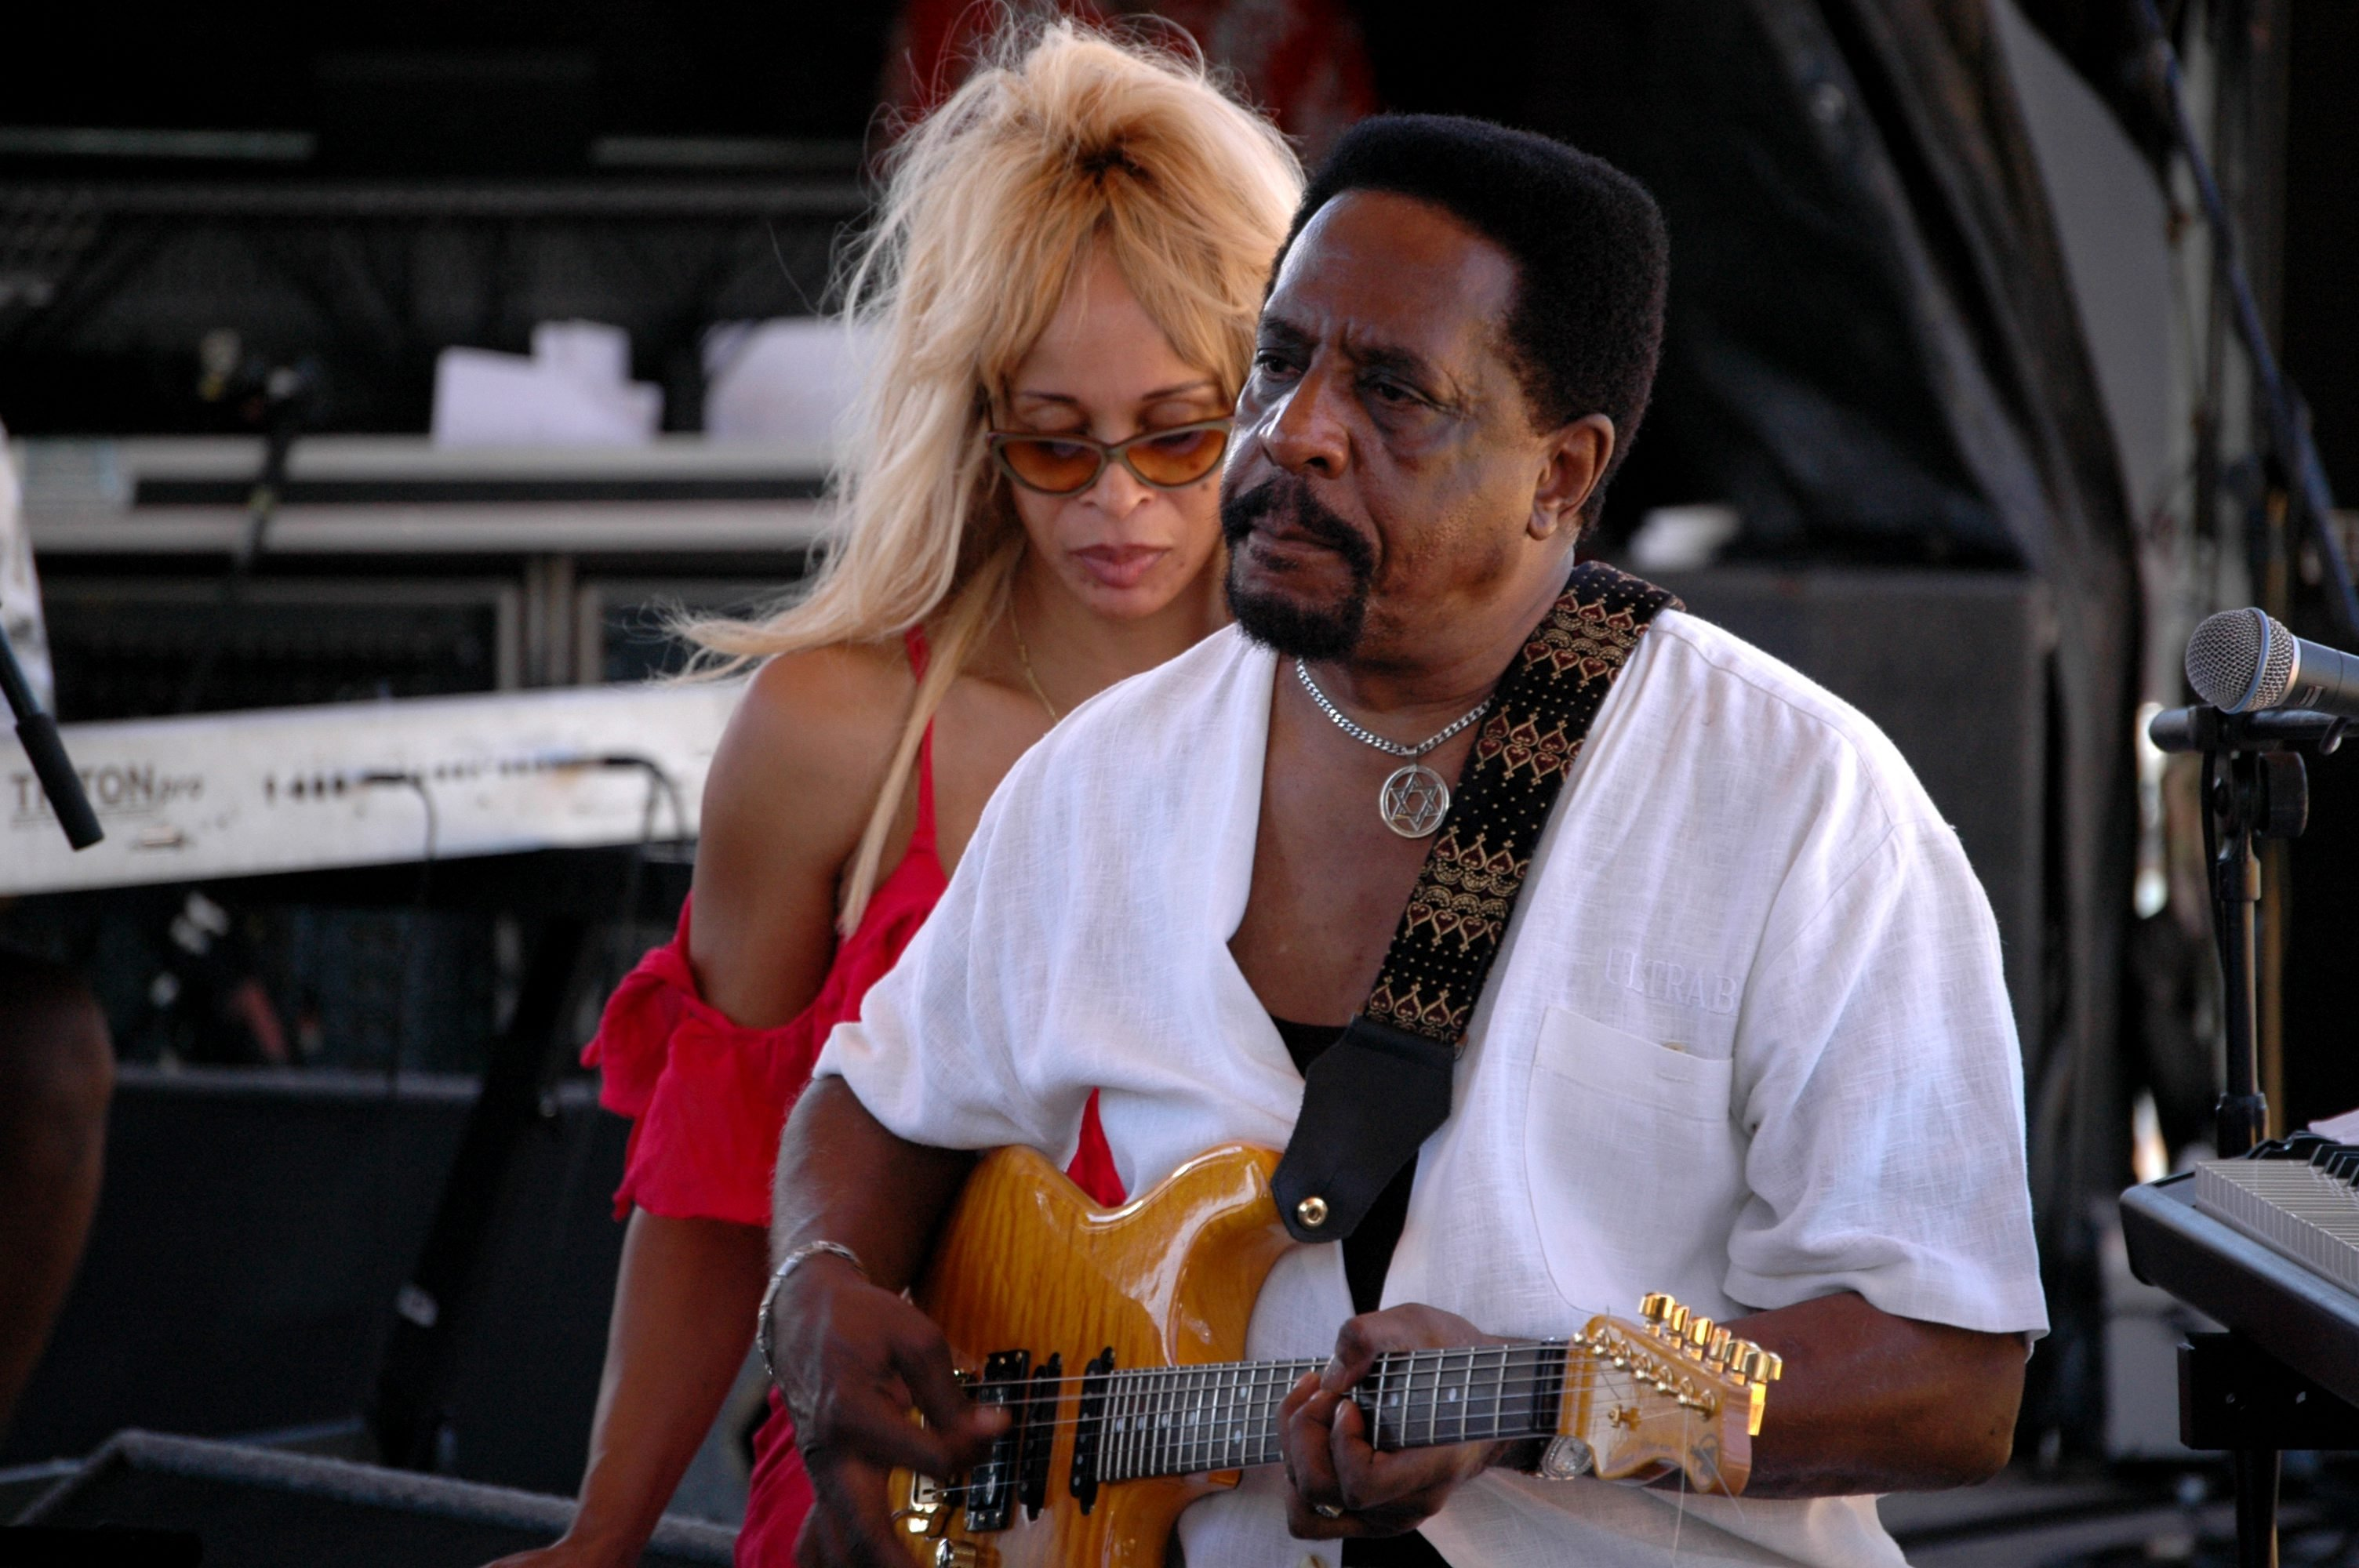 Ike Turner and Audrey Madison perform on stage at Koh Samui Festival, Thailand, September 2005.   Photo: GettyImages